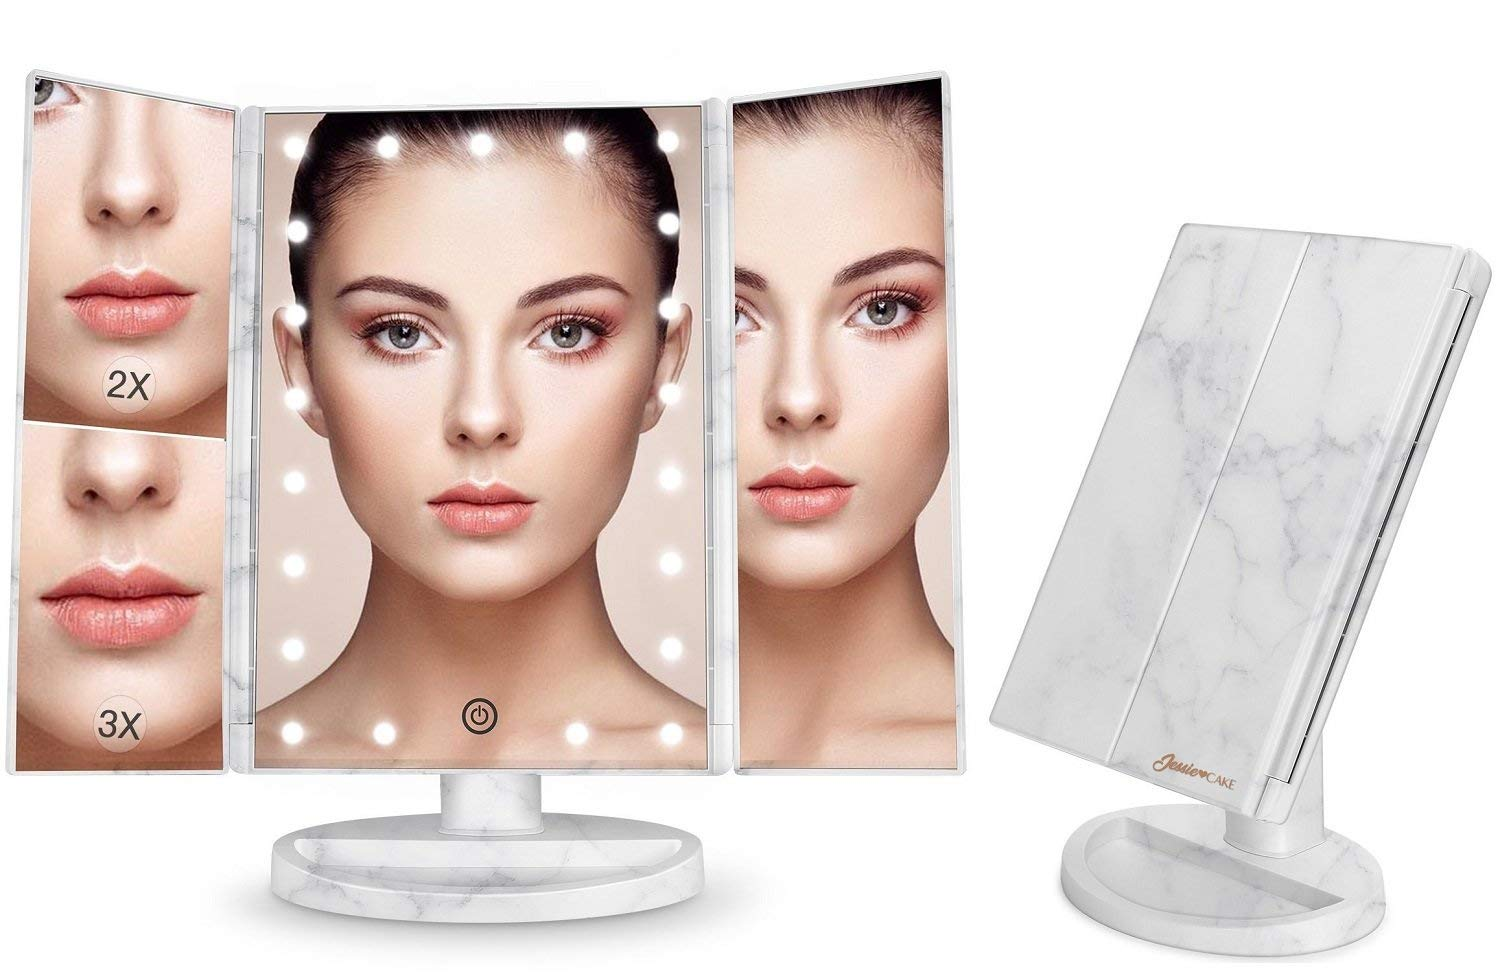 New White Marble [Exclusive] Tri Fold Makeup Vanity Mirror with 21 adjustable LED Lights, 3x/2x Magnification, Touch Screen and 180° Adjustable Rotation, Dual Power Supply, Countertop Cosmetic Mirror Jessie Cake